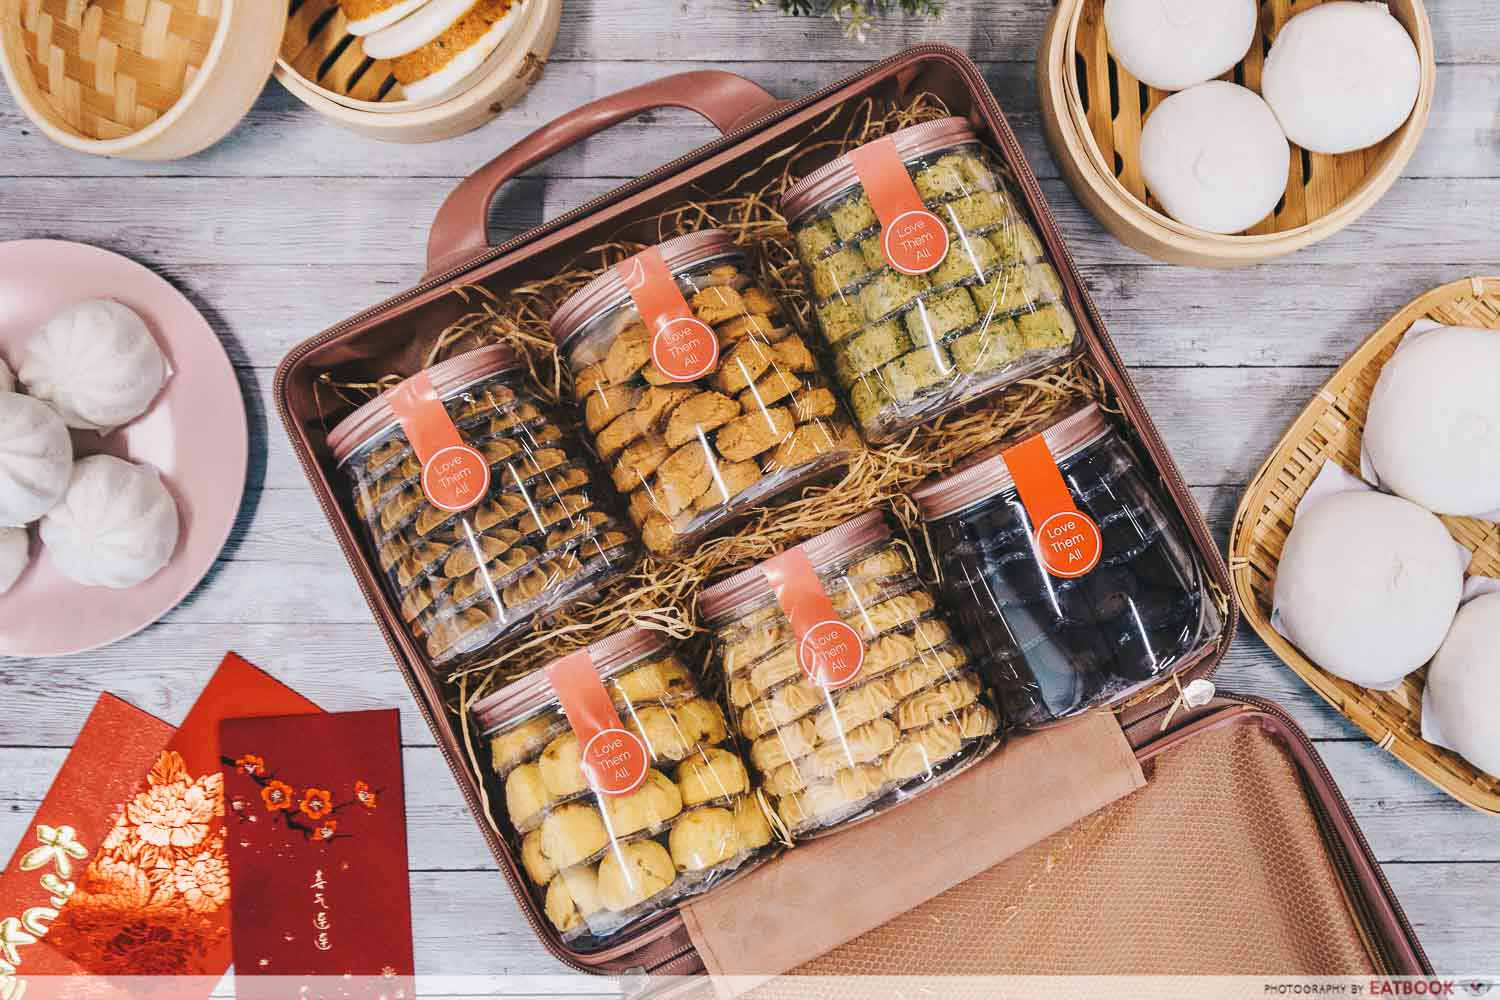 mdm ling bakery cny - cookies